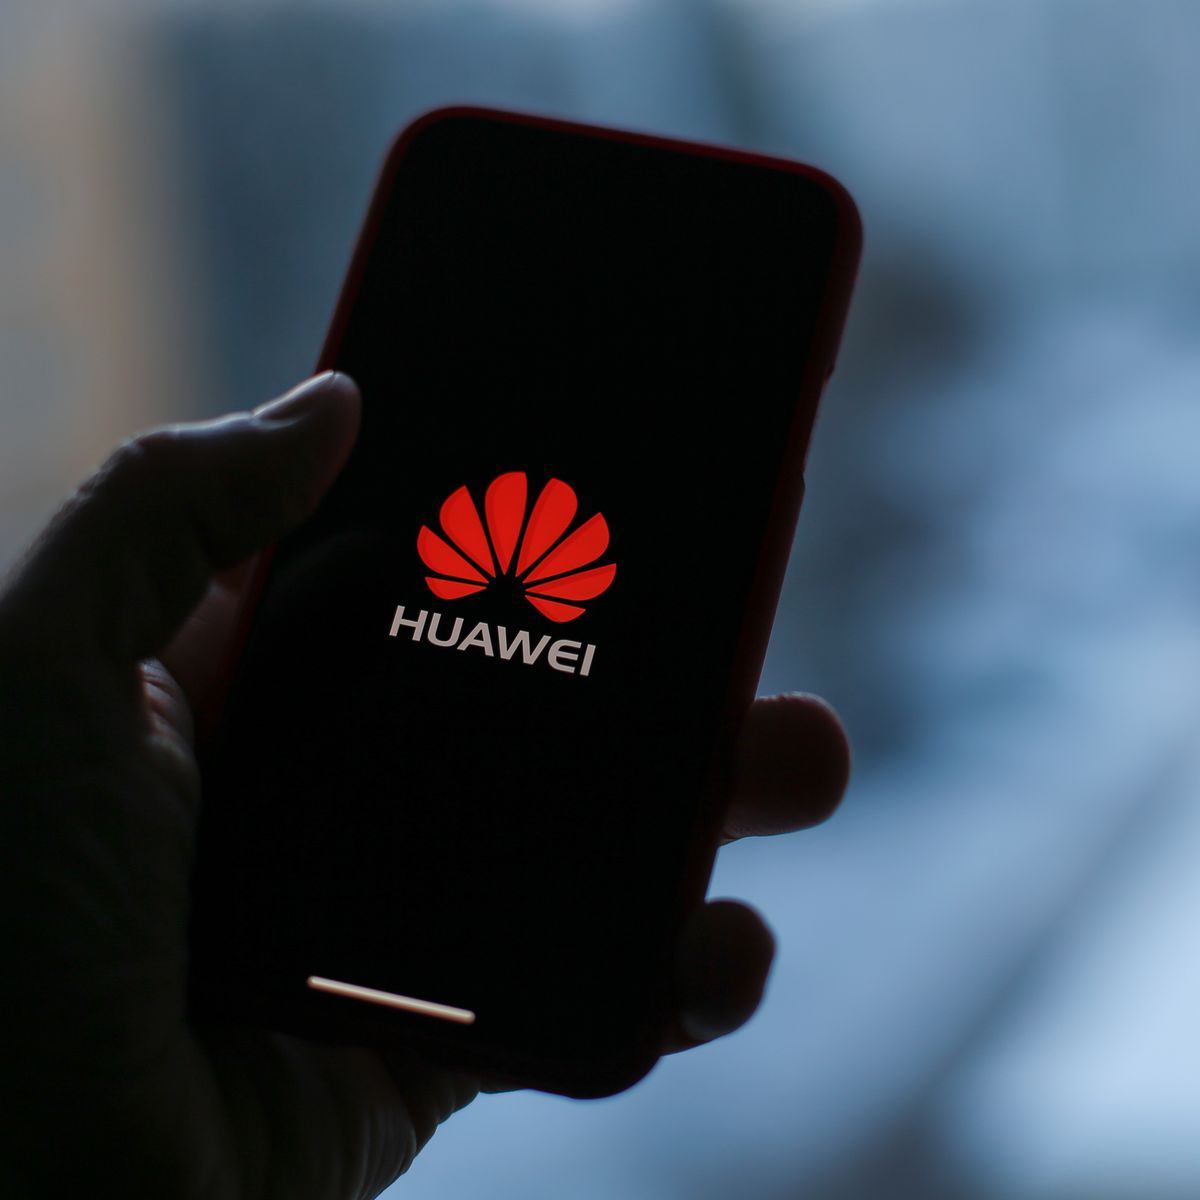 Is the U S  Being Too Paranoid by Banning Huawei?